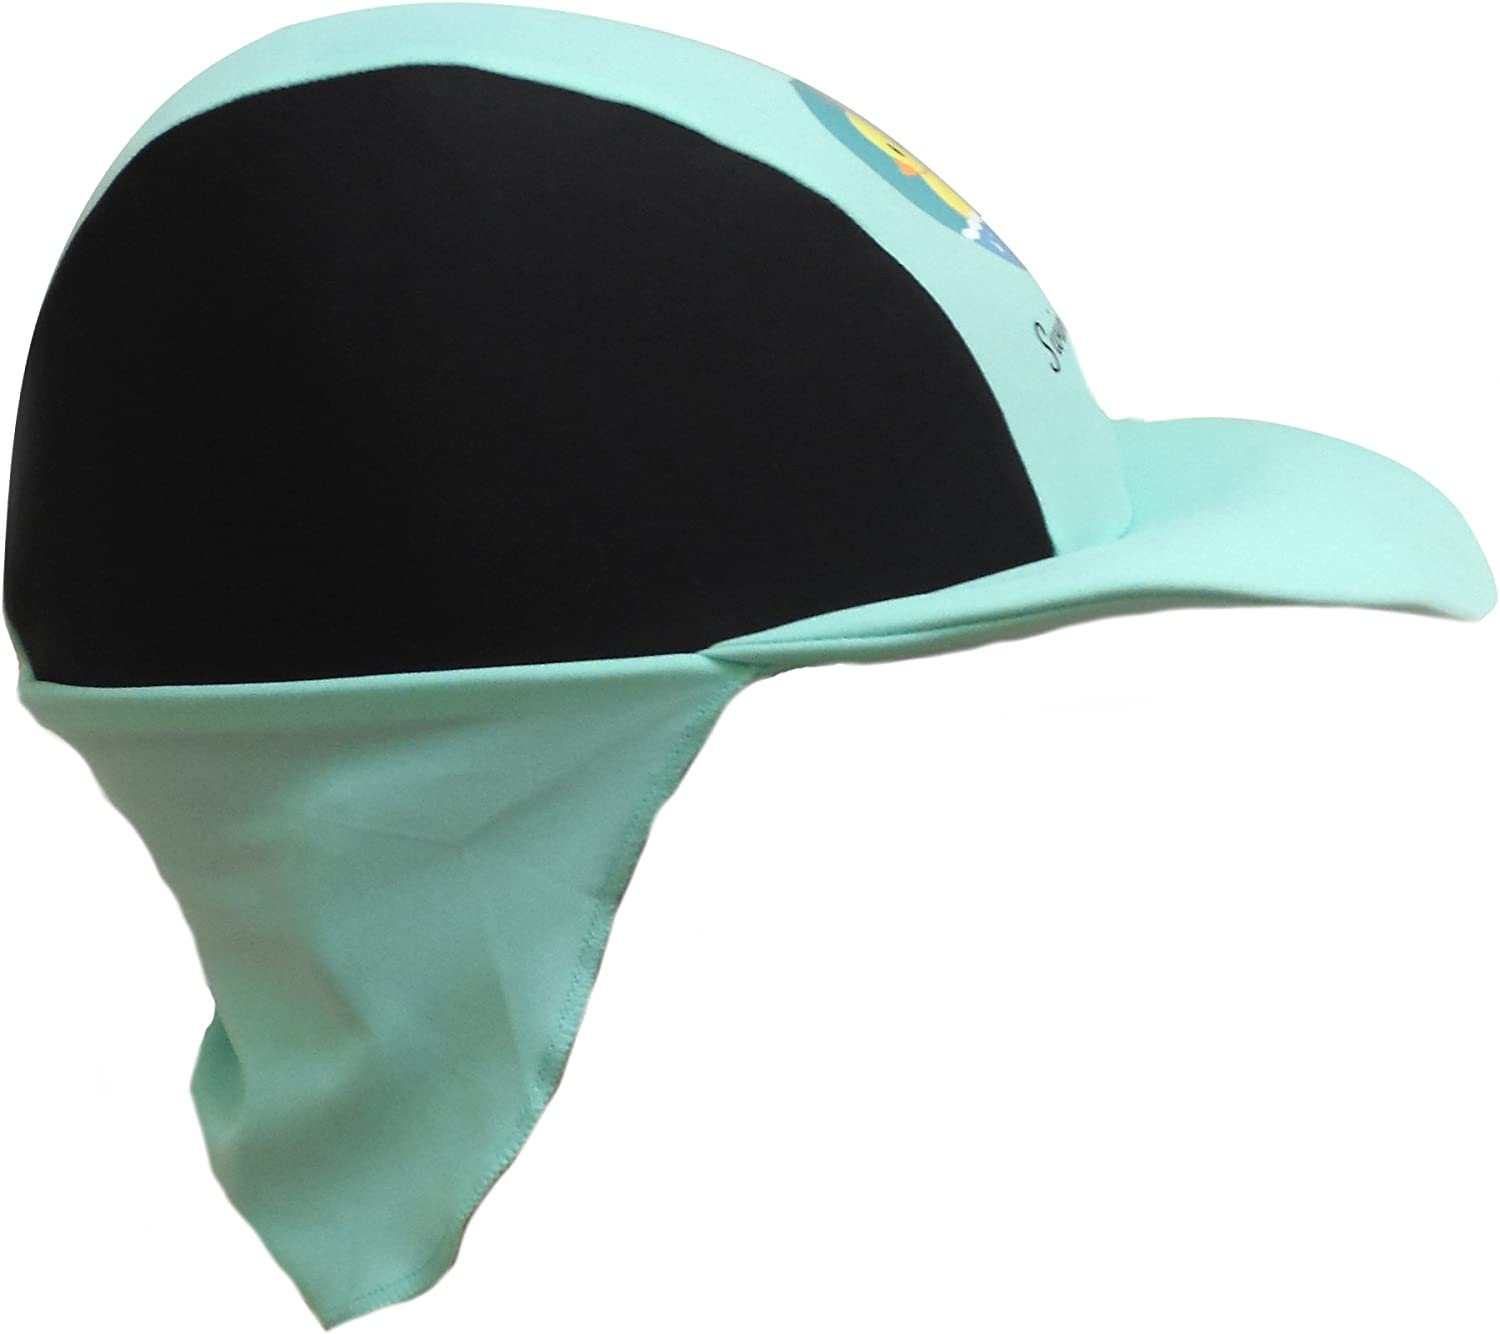 BIB-ON Swim with Me- SPF 50+ Sunhats for Infant Baby Toddler and Kids Age 0-6 Years.